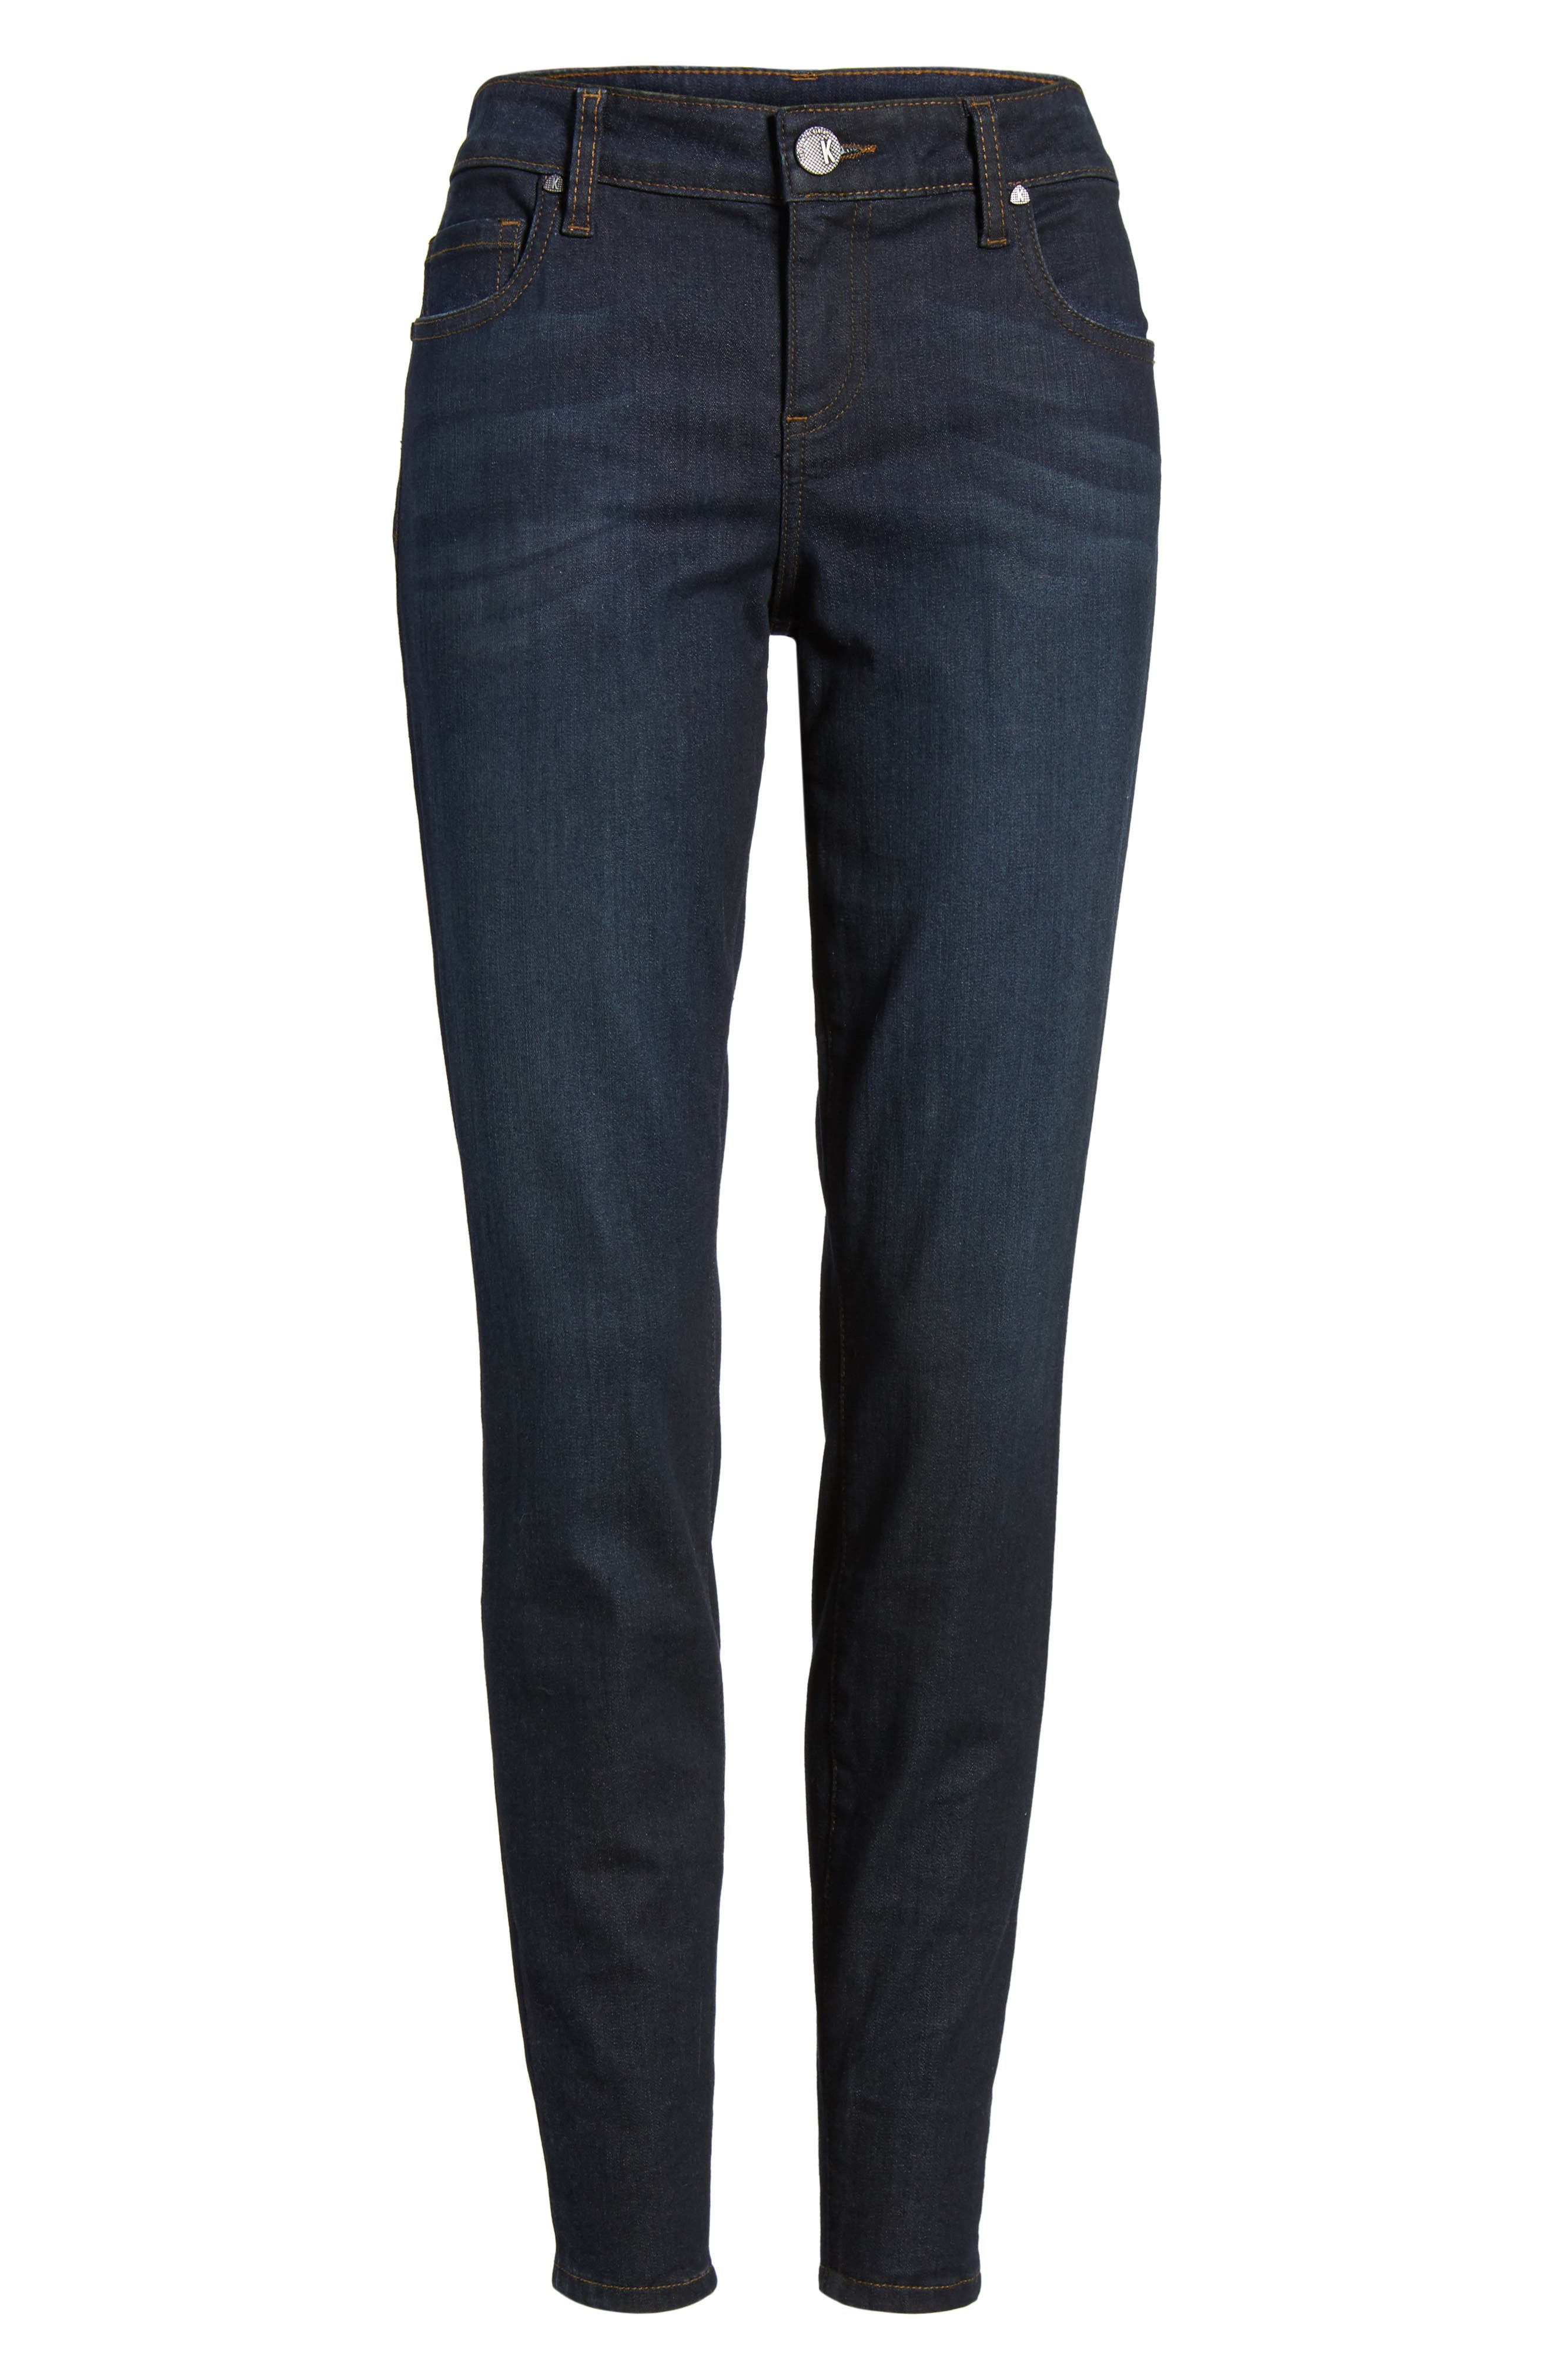 Connie Zip Back Skinny Ankle Jeans,                             Alternate thumbnail 6, color,                             419